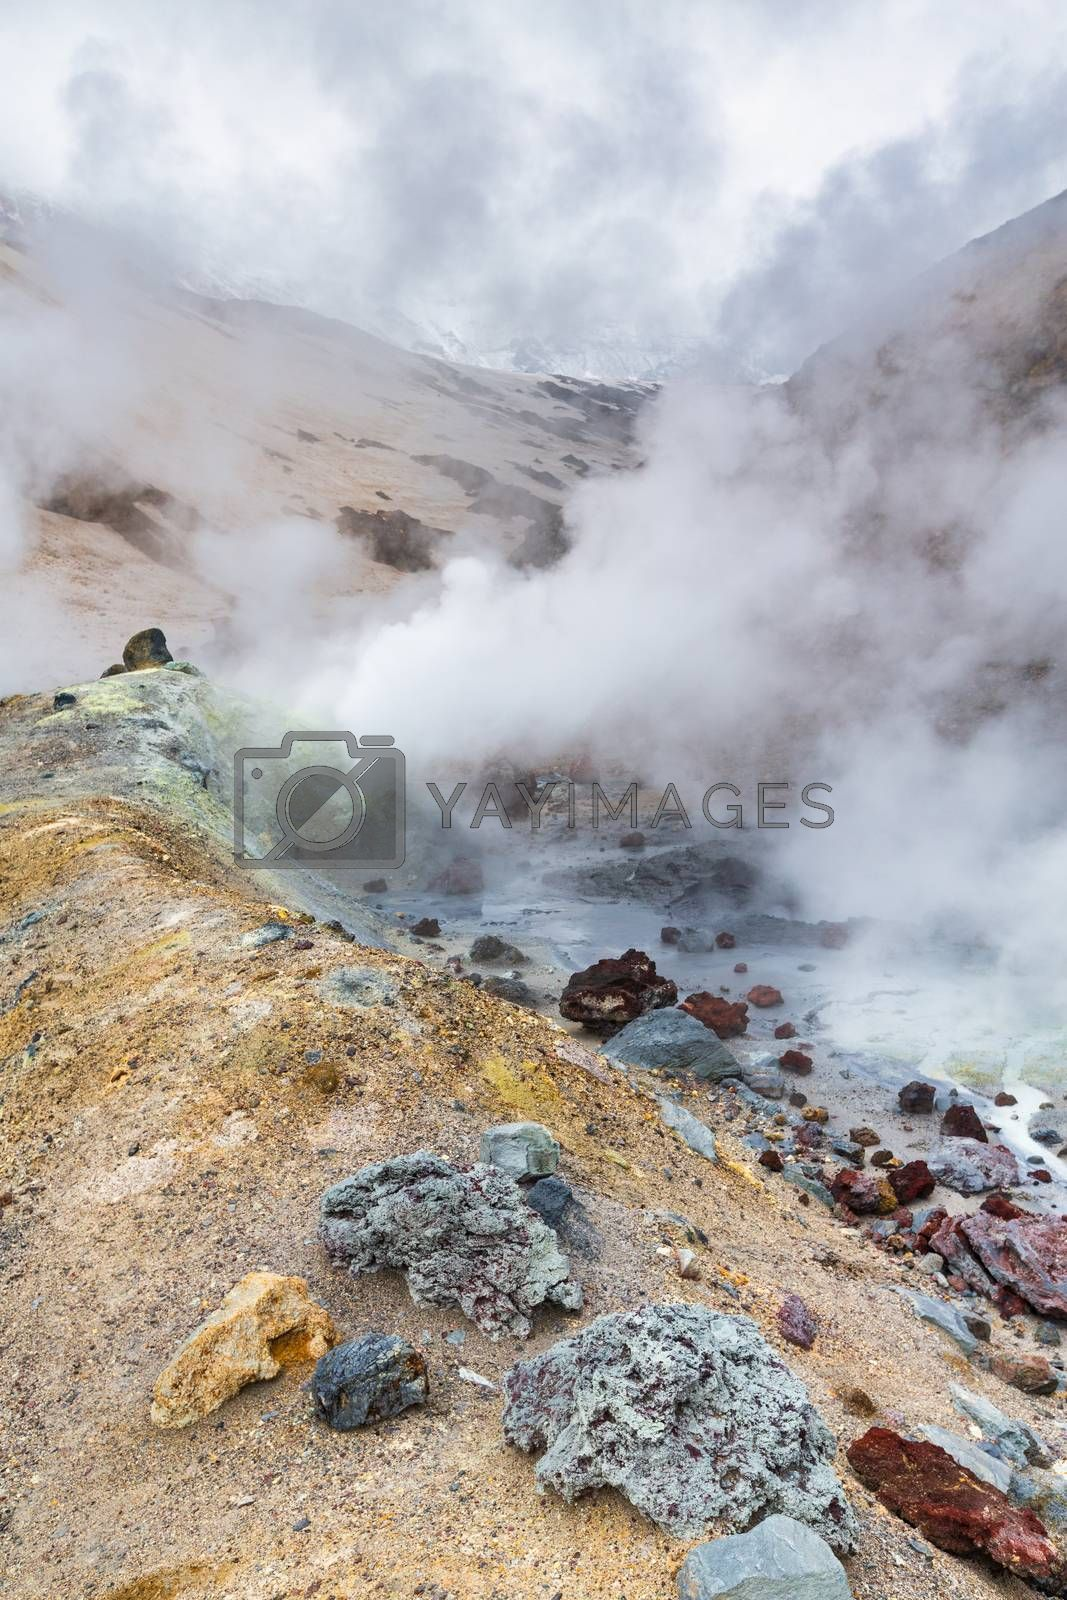 Mountain landscape, crater of active volcano: fumarole, hot spring, lava field, gas-steam activity. Dramatic volcanic landscape, popular travel destinations for active vacation, mount climbing, hiking